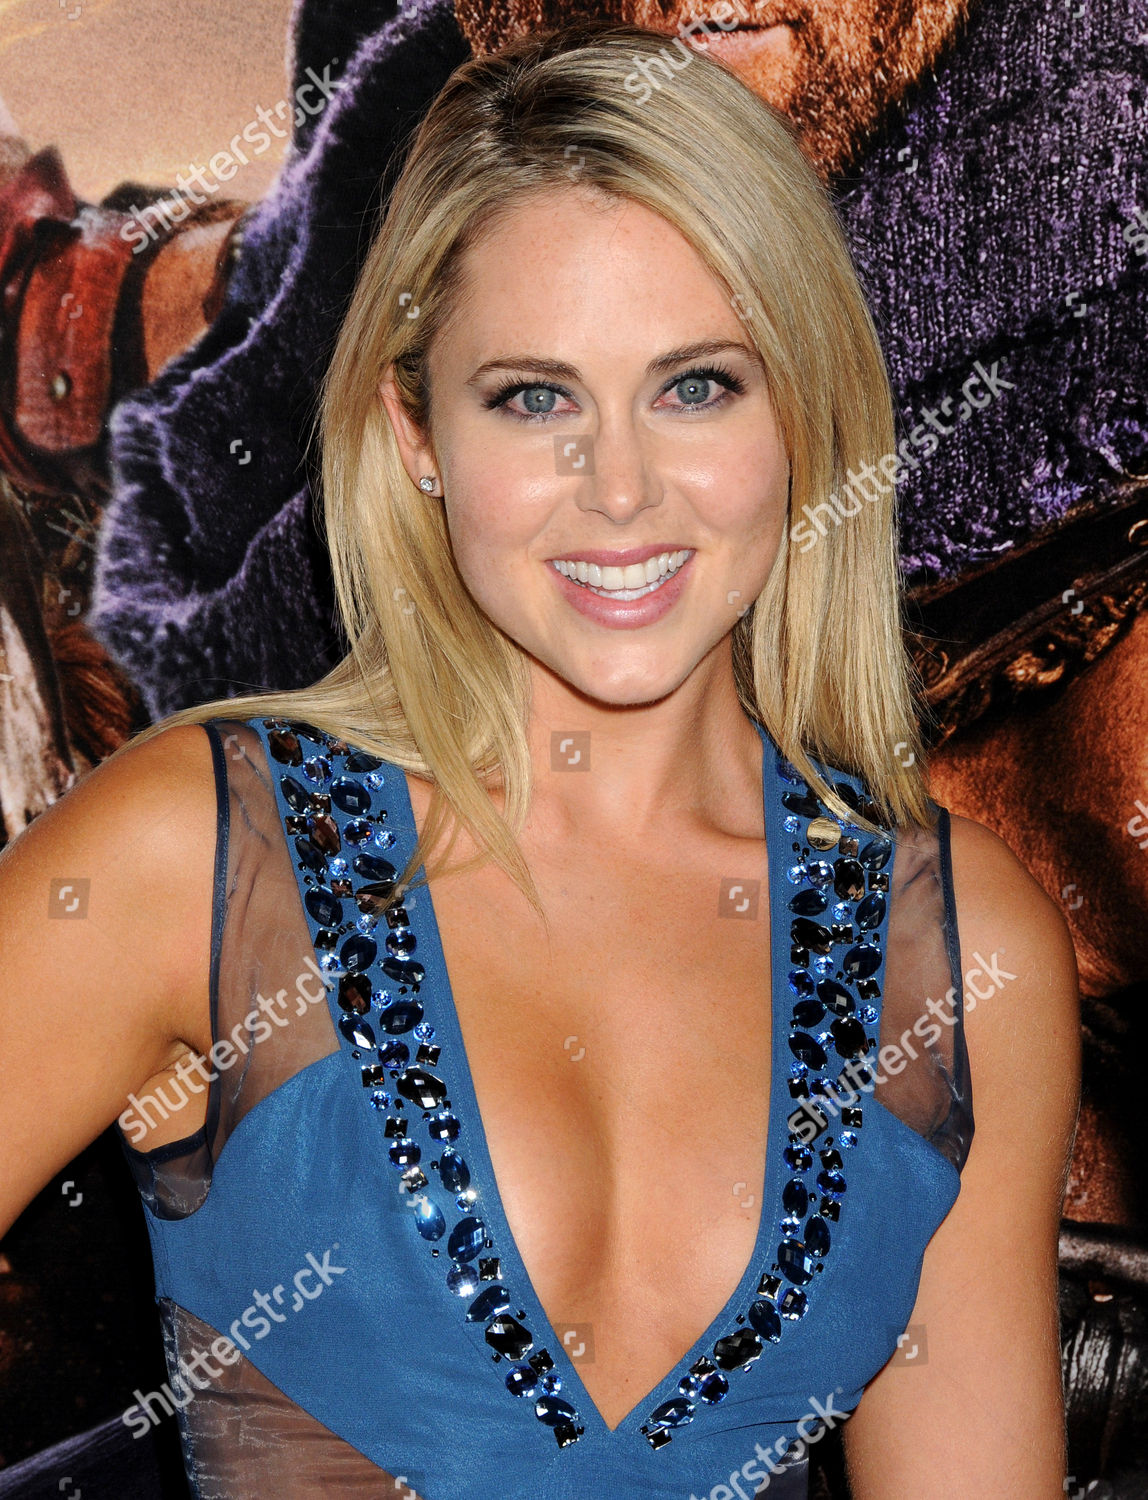 Cleavage Anna Hutchison naked (98 foto and video), Topless, Sideboobs, Twitter, butt 2017